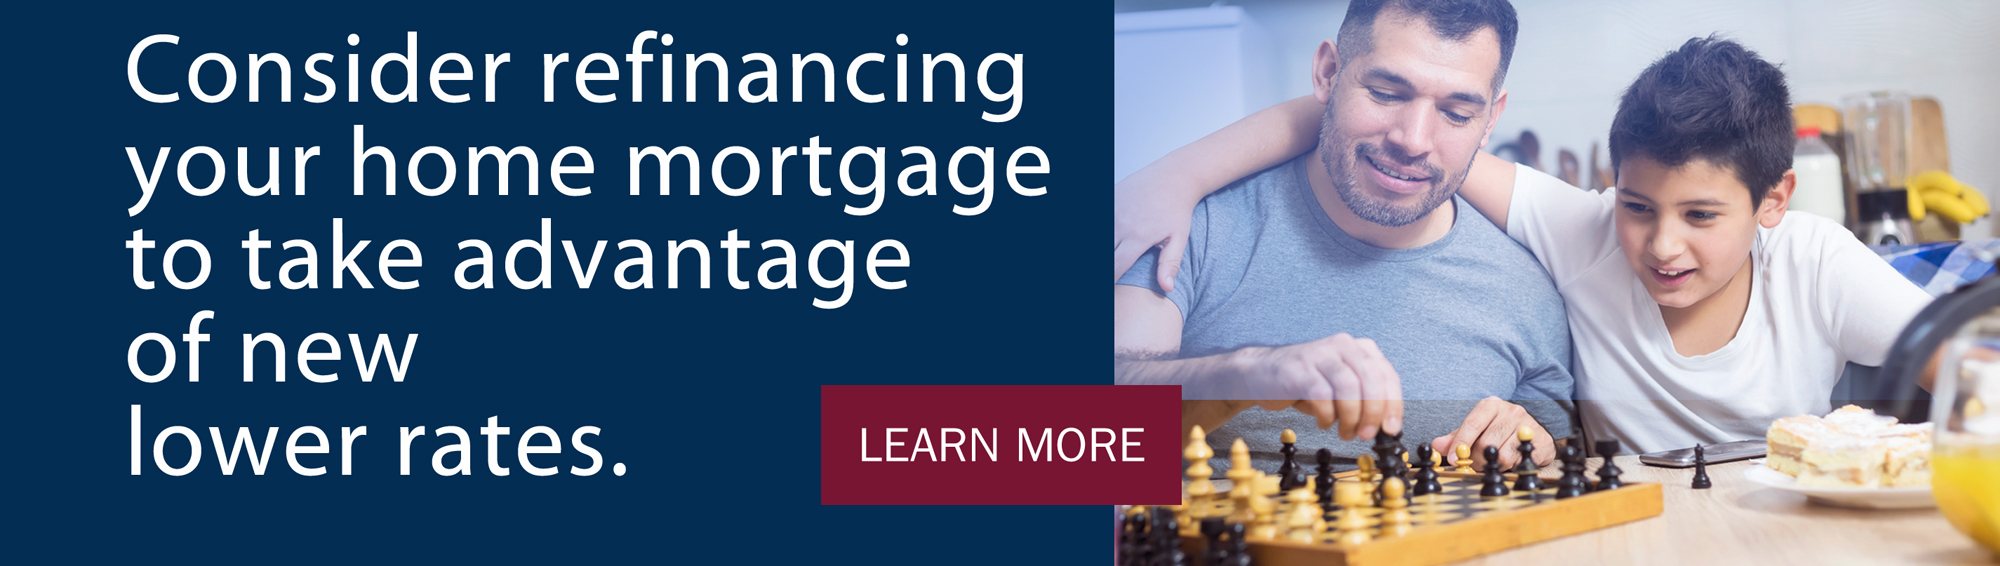 Considerrefinancing your home mortgage to take advantage of new lower rates. Learn More